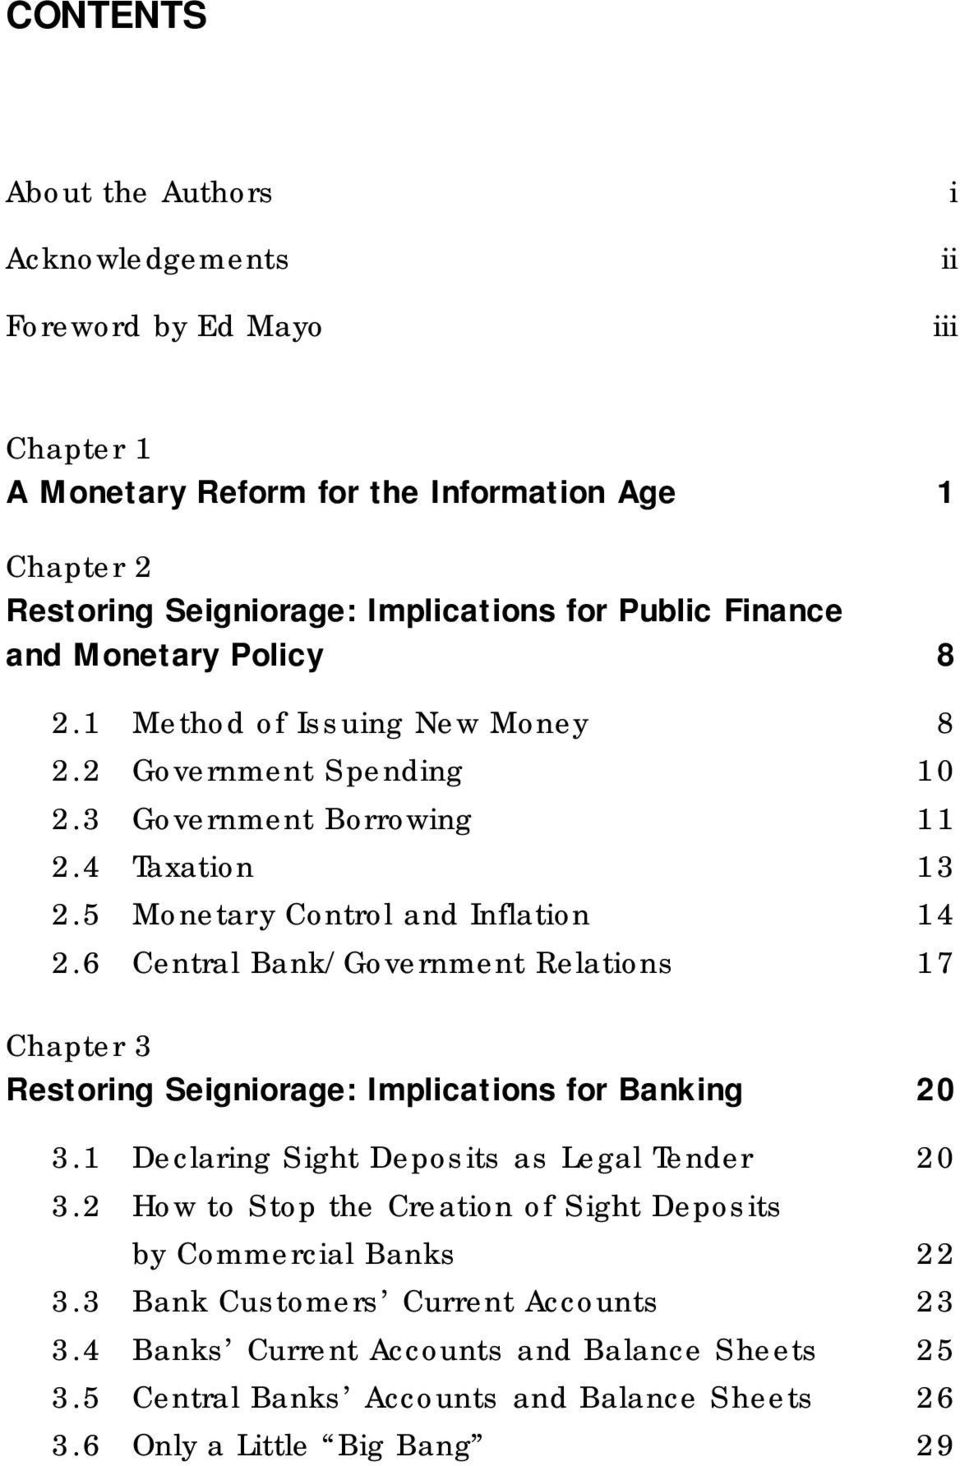 6 Central Bank/Government Relations 17 Chapter 3 Restoring Seigniorage: Implications for Banking 20 3.1 Declaring Sight Deposits as Legal Tender 20 3.